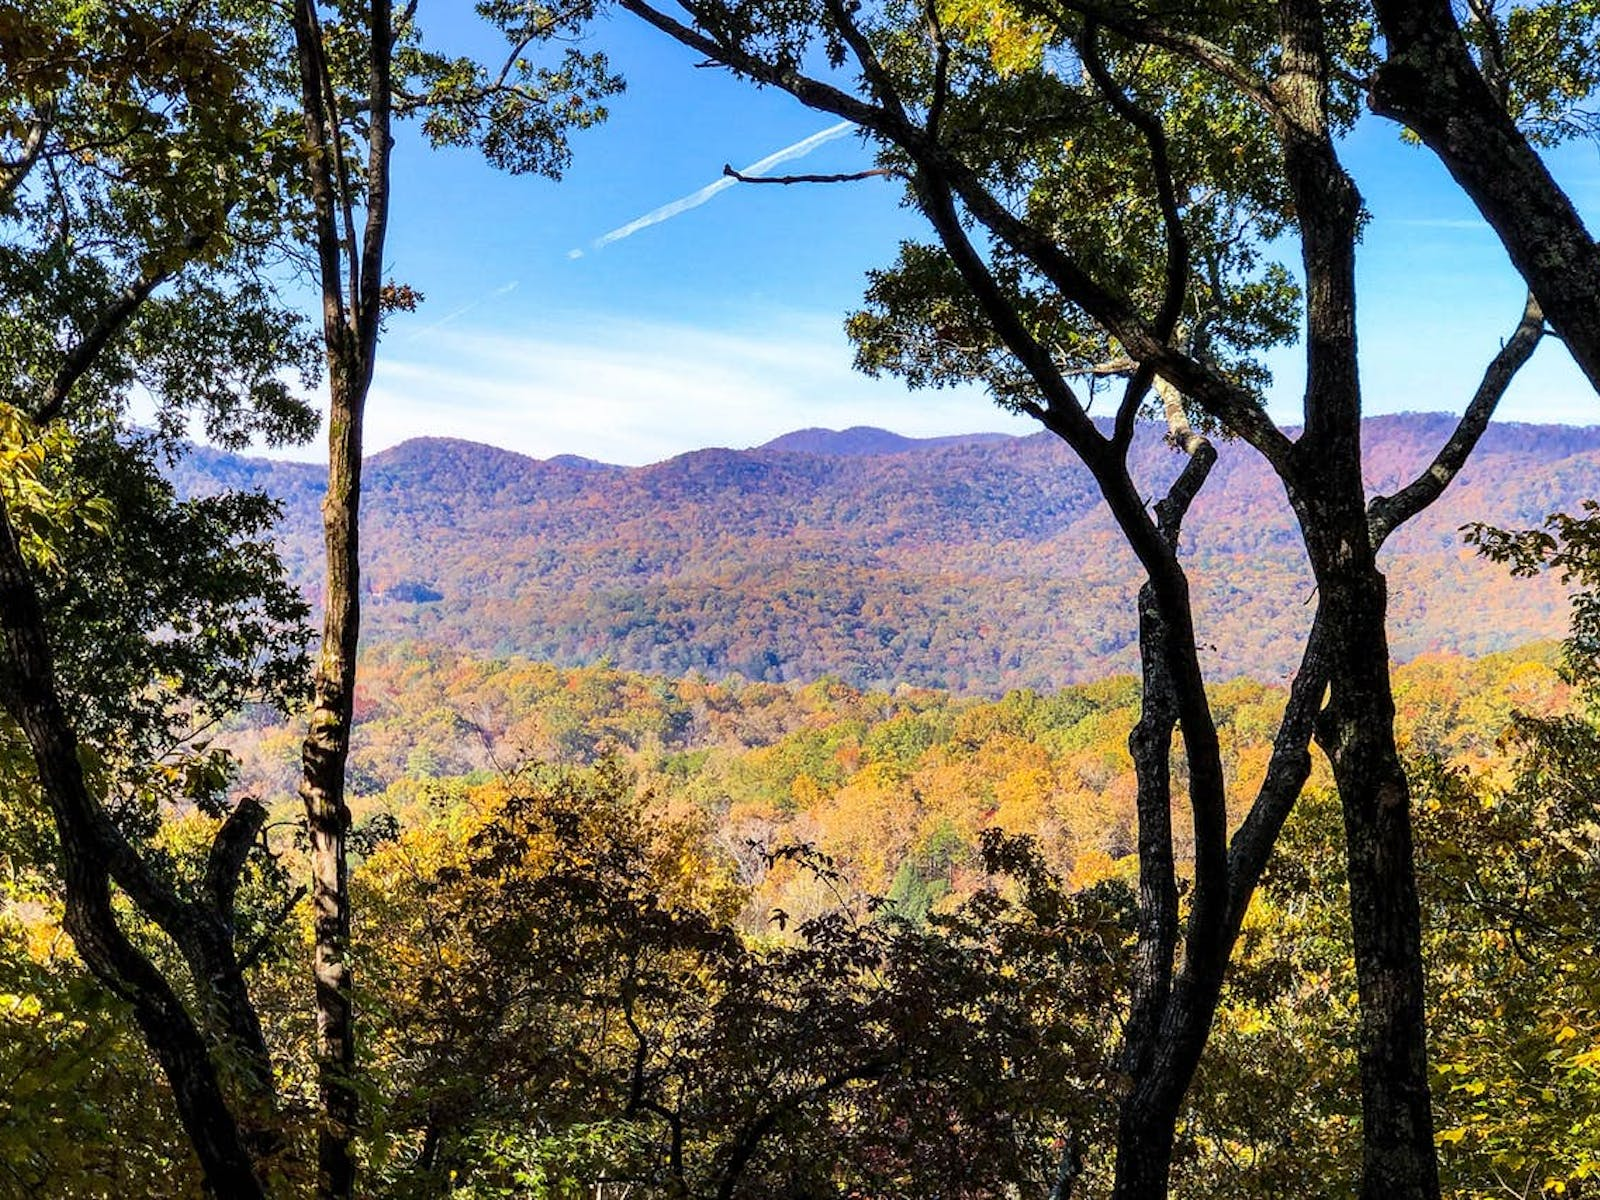 blue ridge georgia mountains and forest view